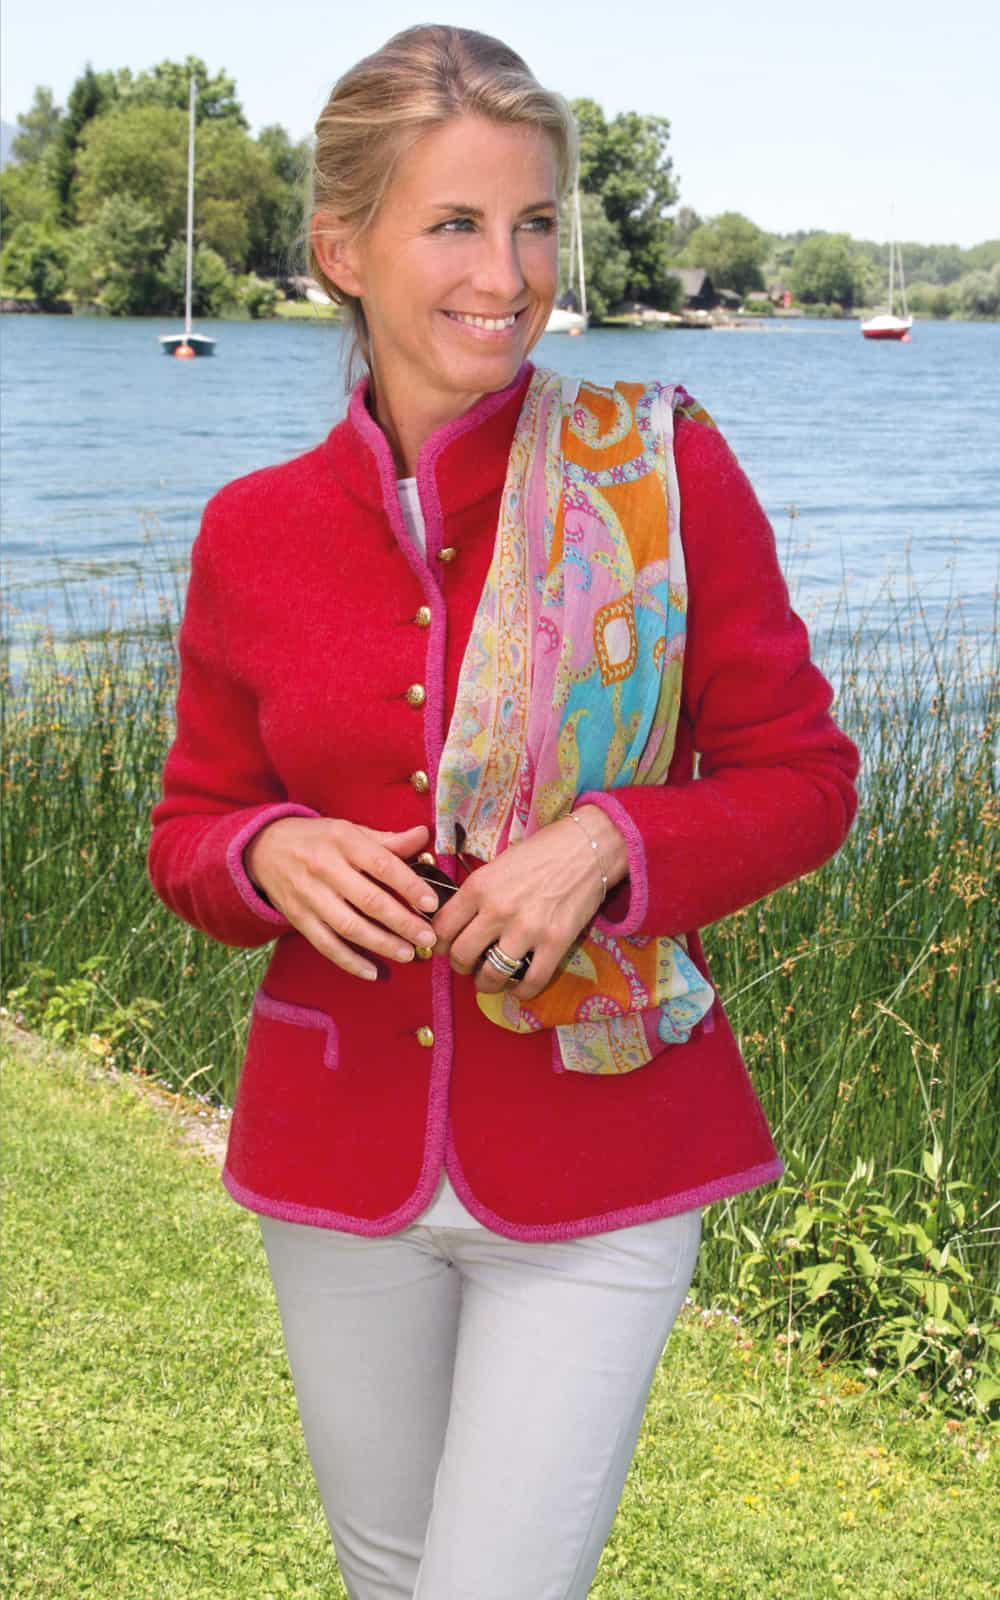 Jacket: L355 Color: 506/290 [LÖW]